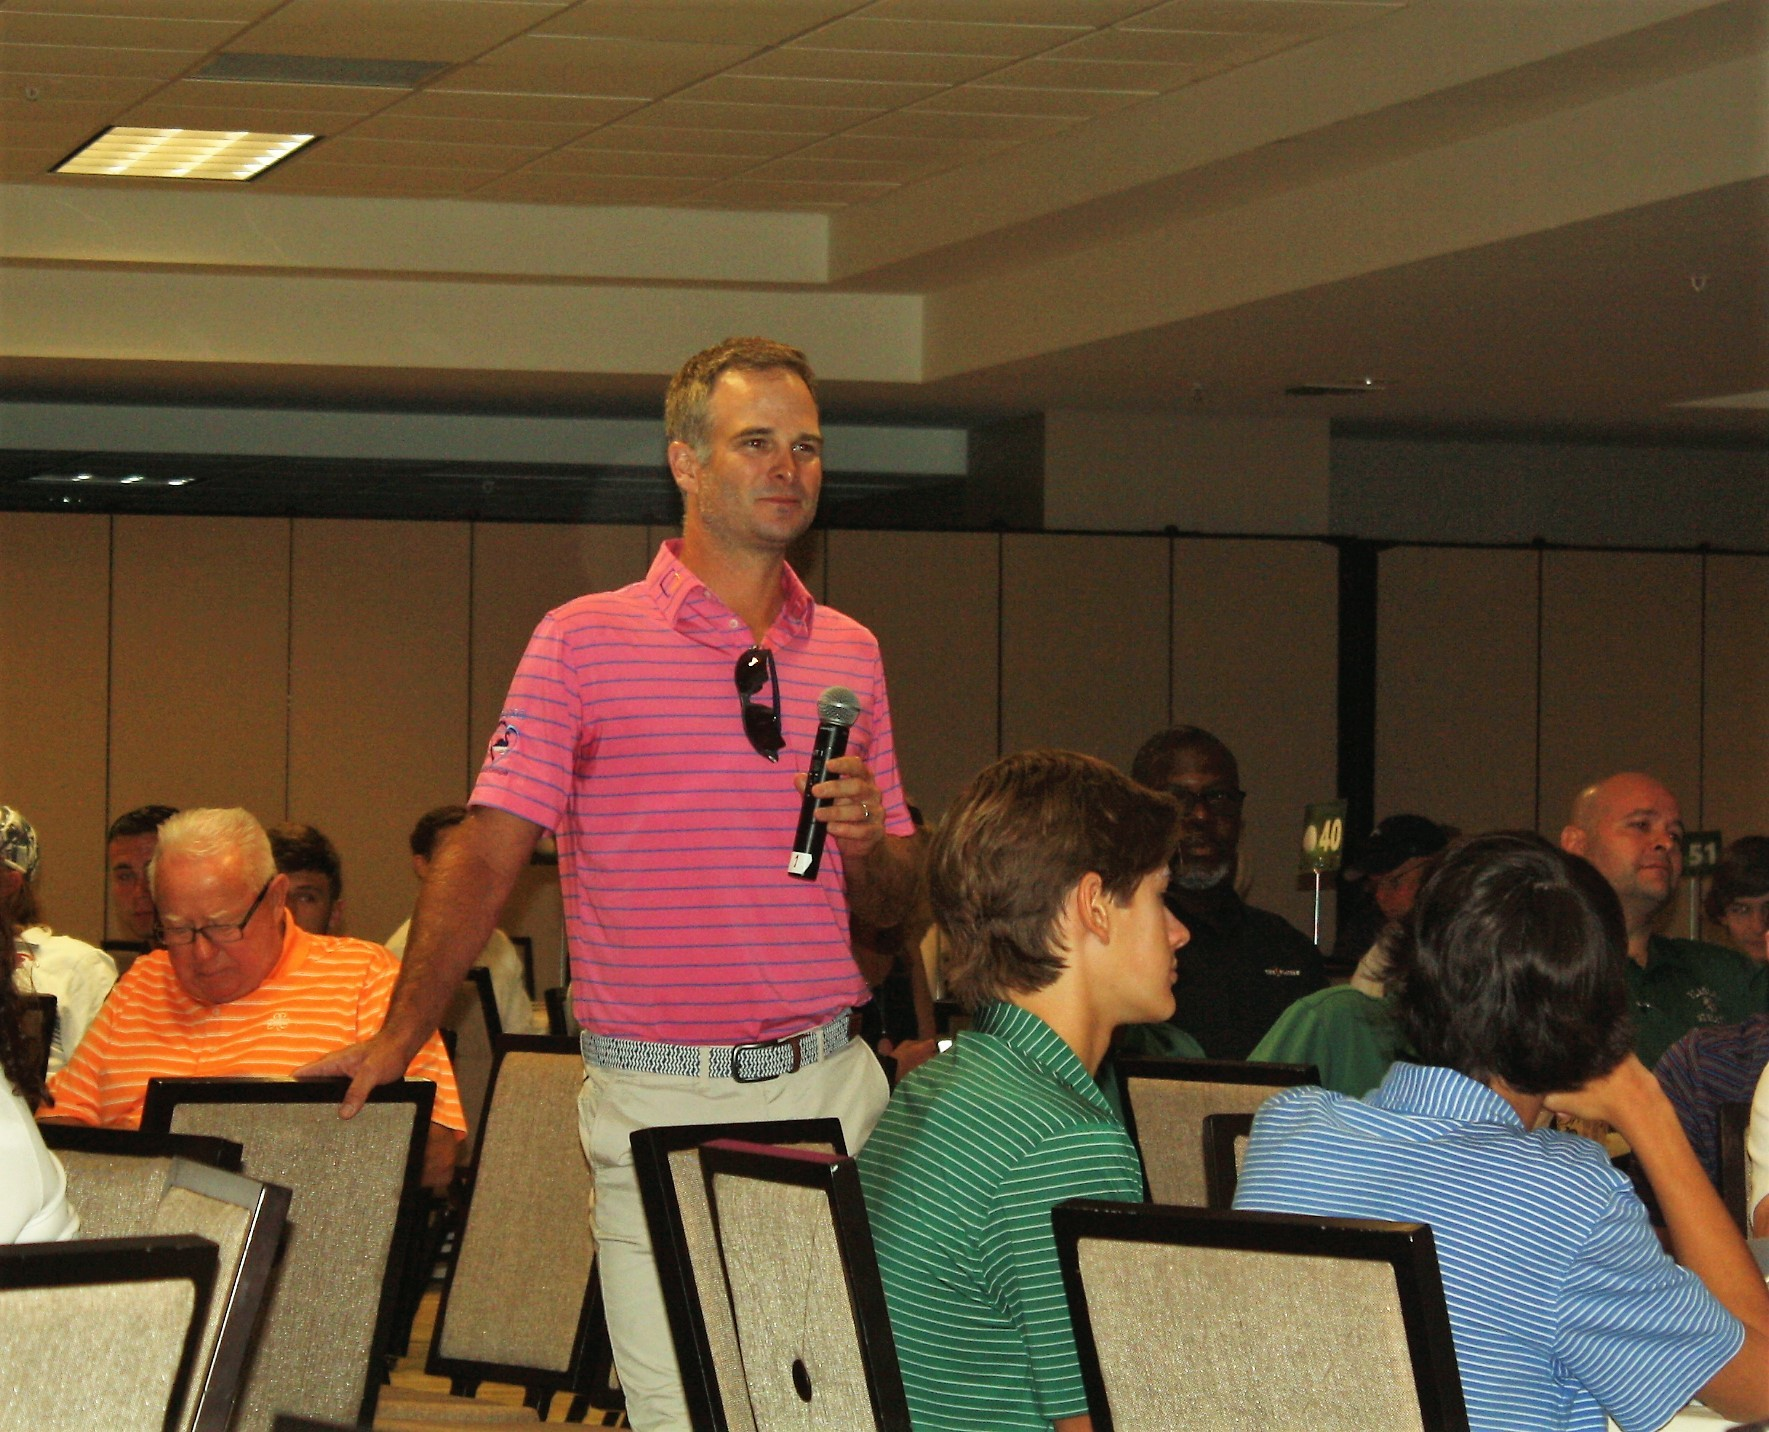 PGA Tour golfer Kevin Streelman shares his faith with youth golfers.